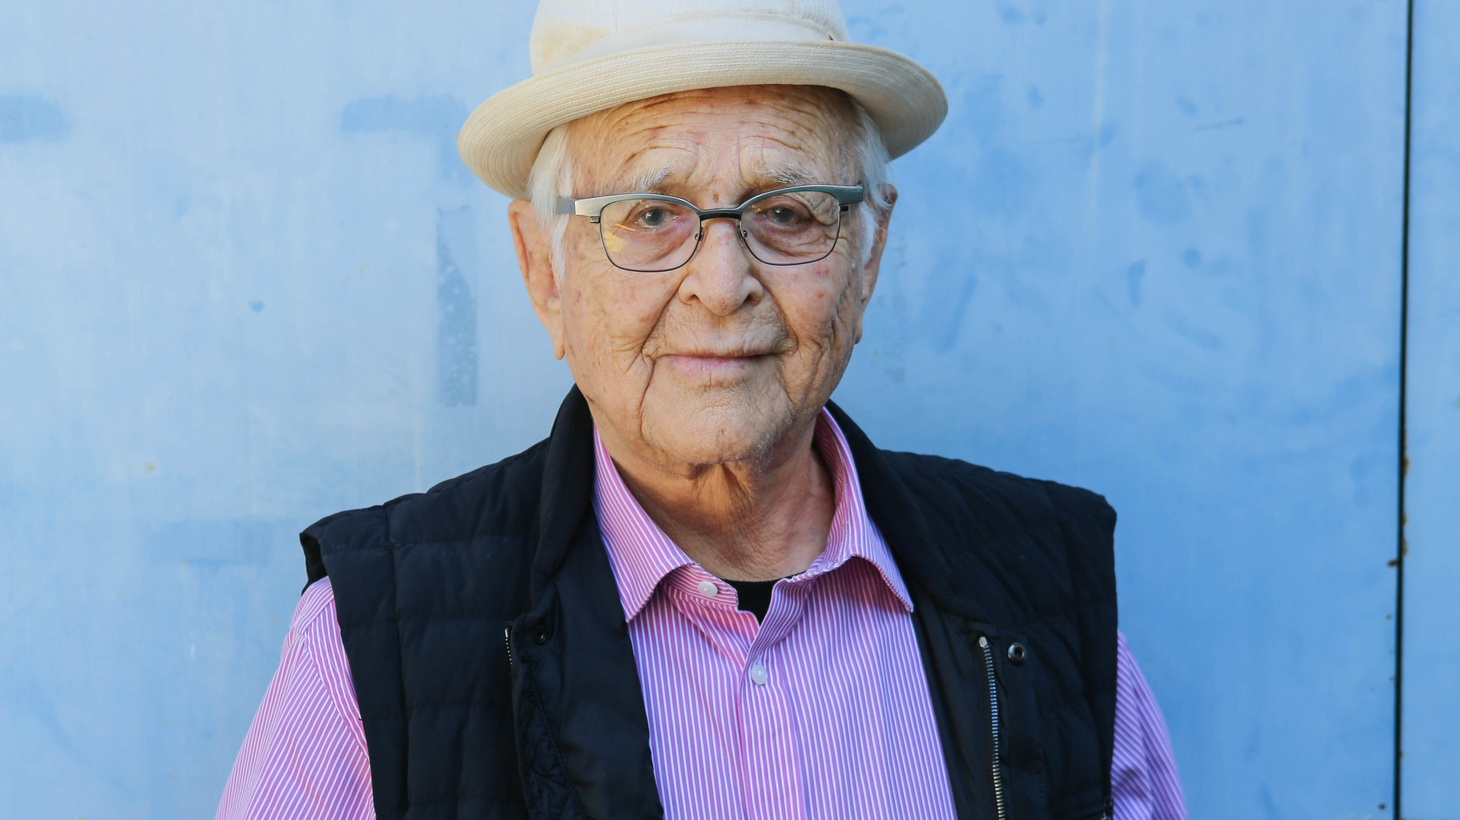 The 95-year-old television icon talks about politics and mortality.  [Contains mature language.]